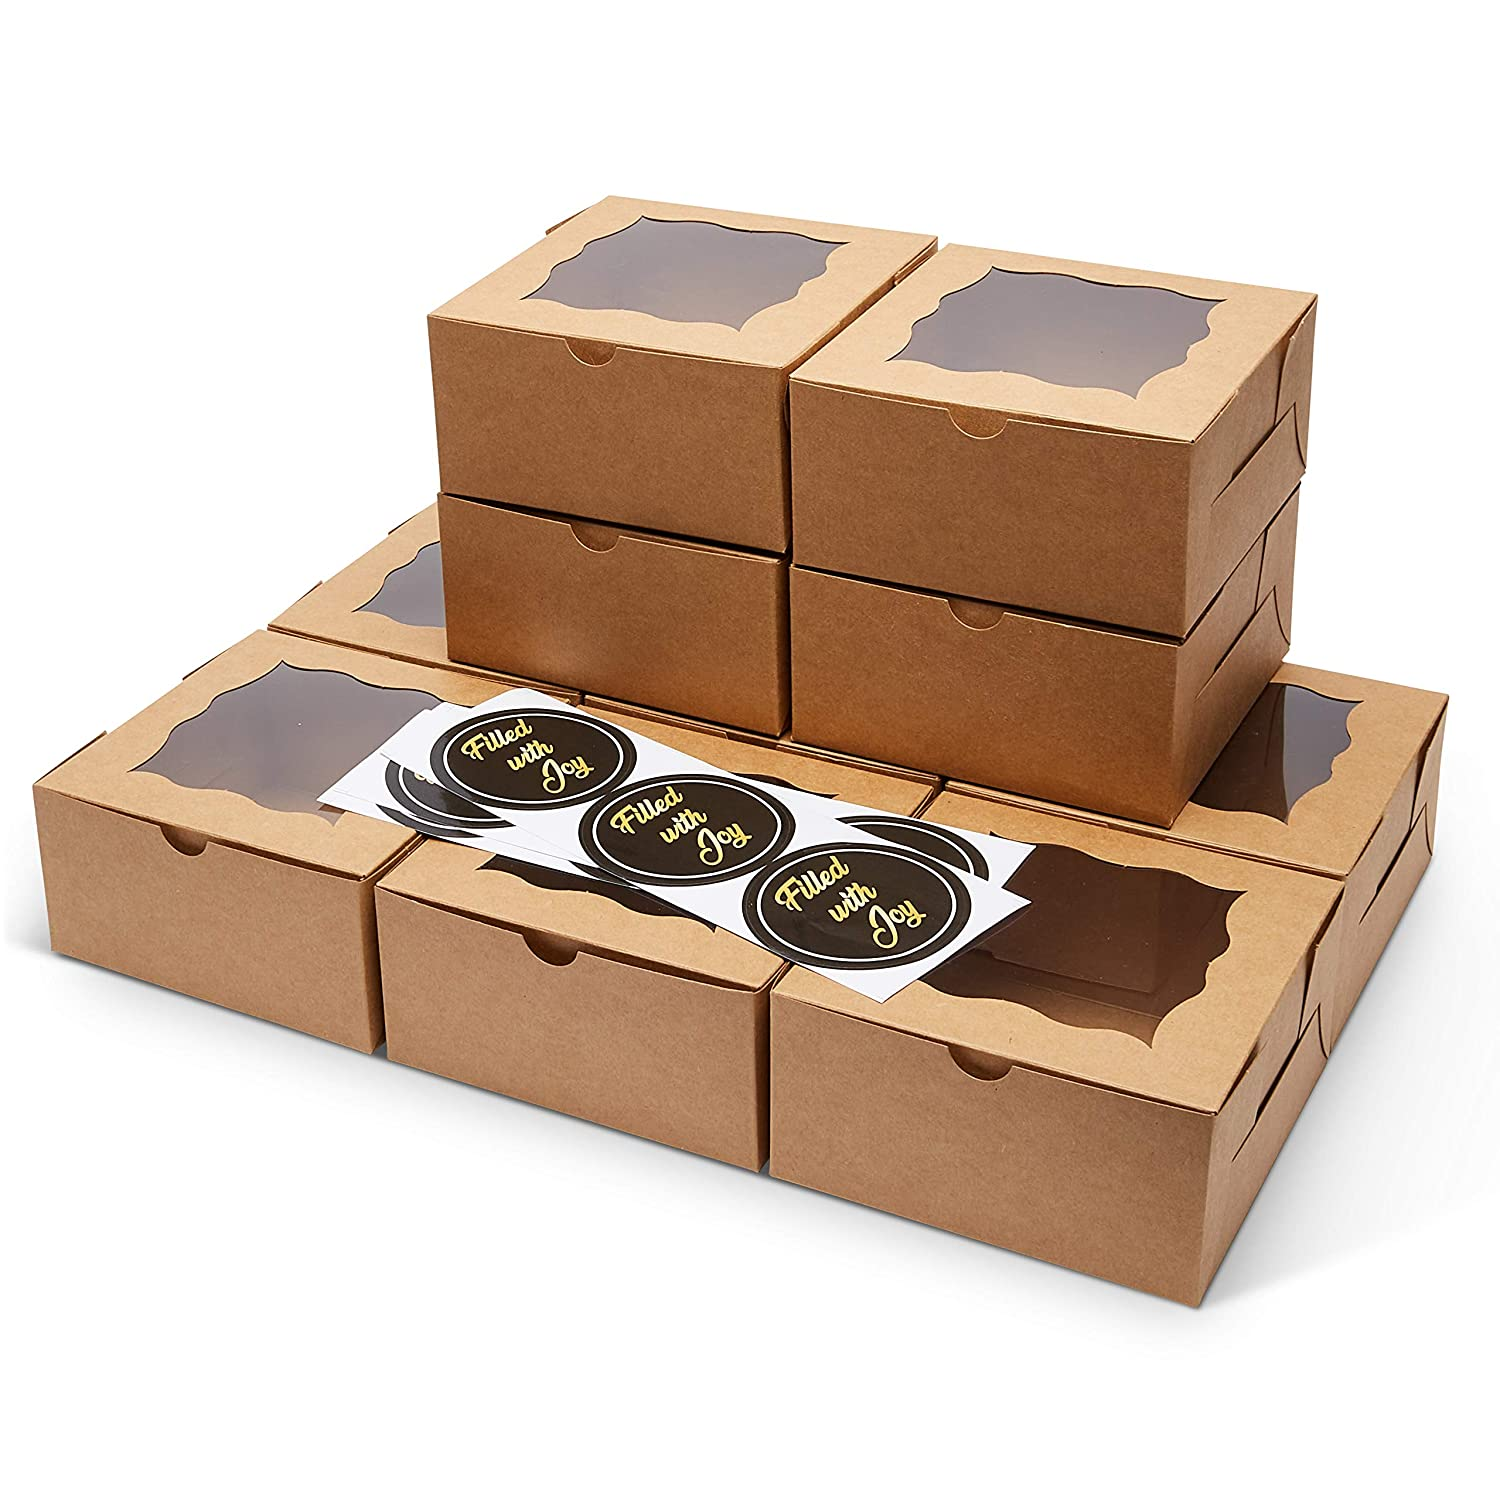 FREVES Brown Bakery Boxes - 25 Pack - Bakery Box with Window - Desserts, Soaps, Gifts - Free Stickers - Easy Assembly - Durable Pastry Boxes - 6x6x3 - Natural Color